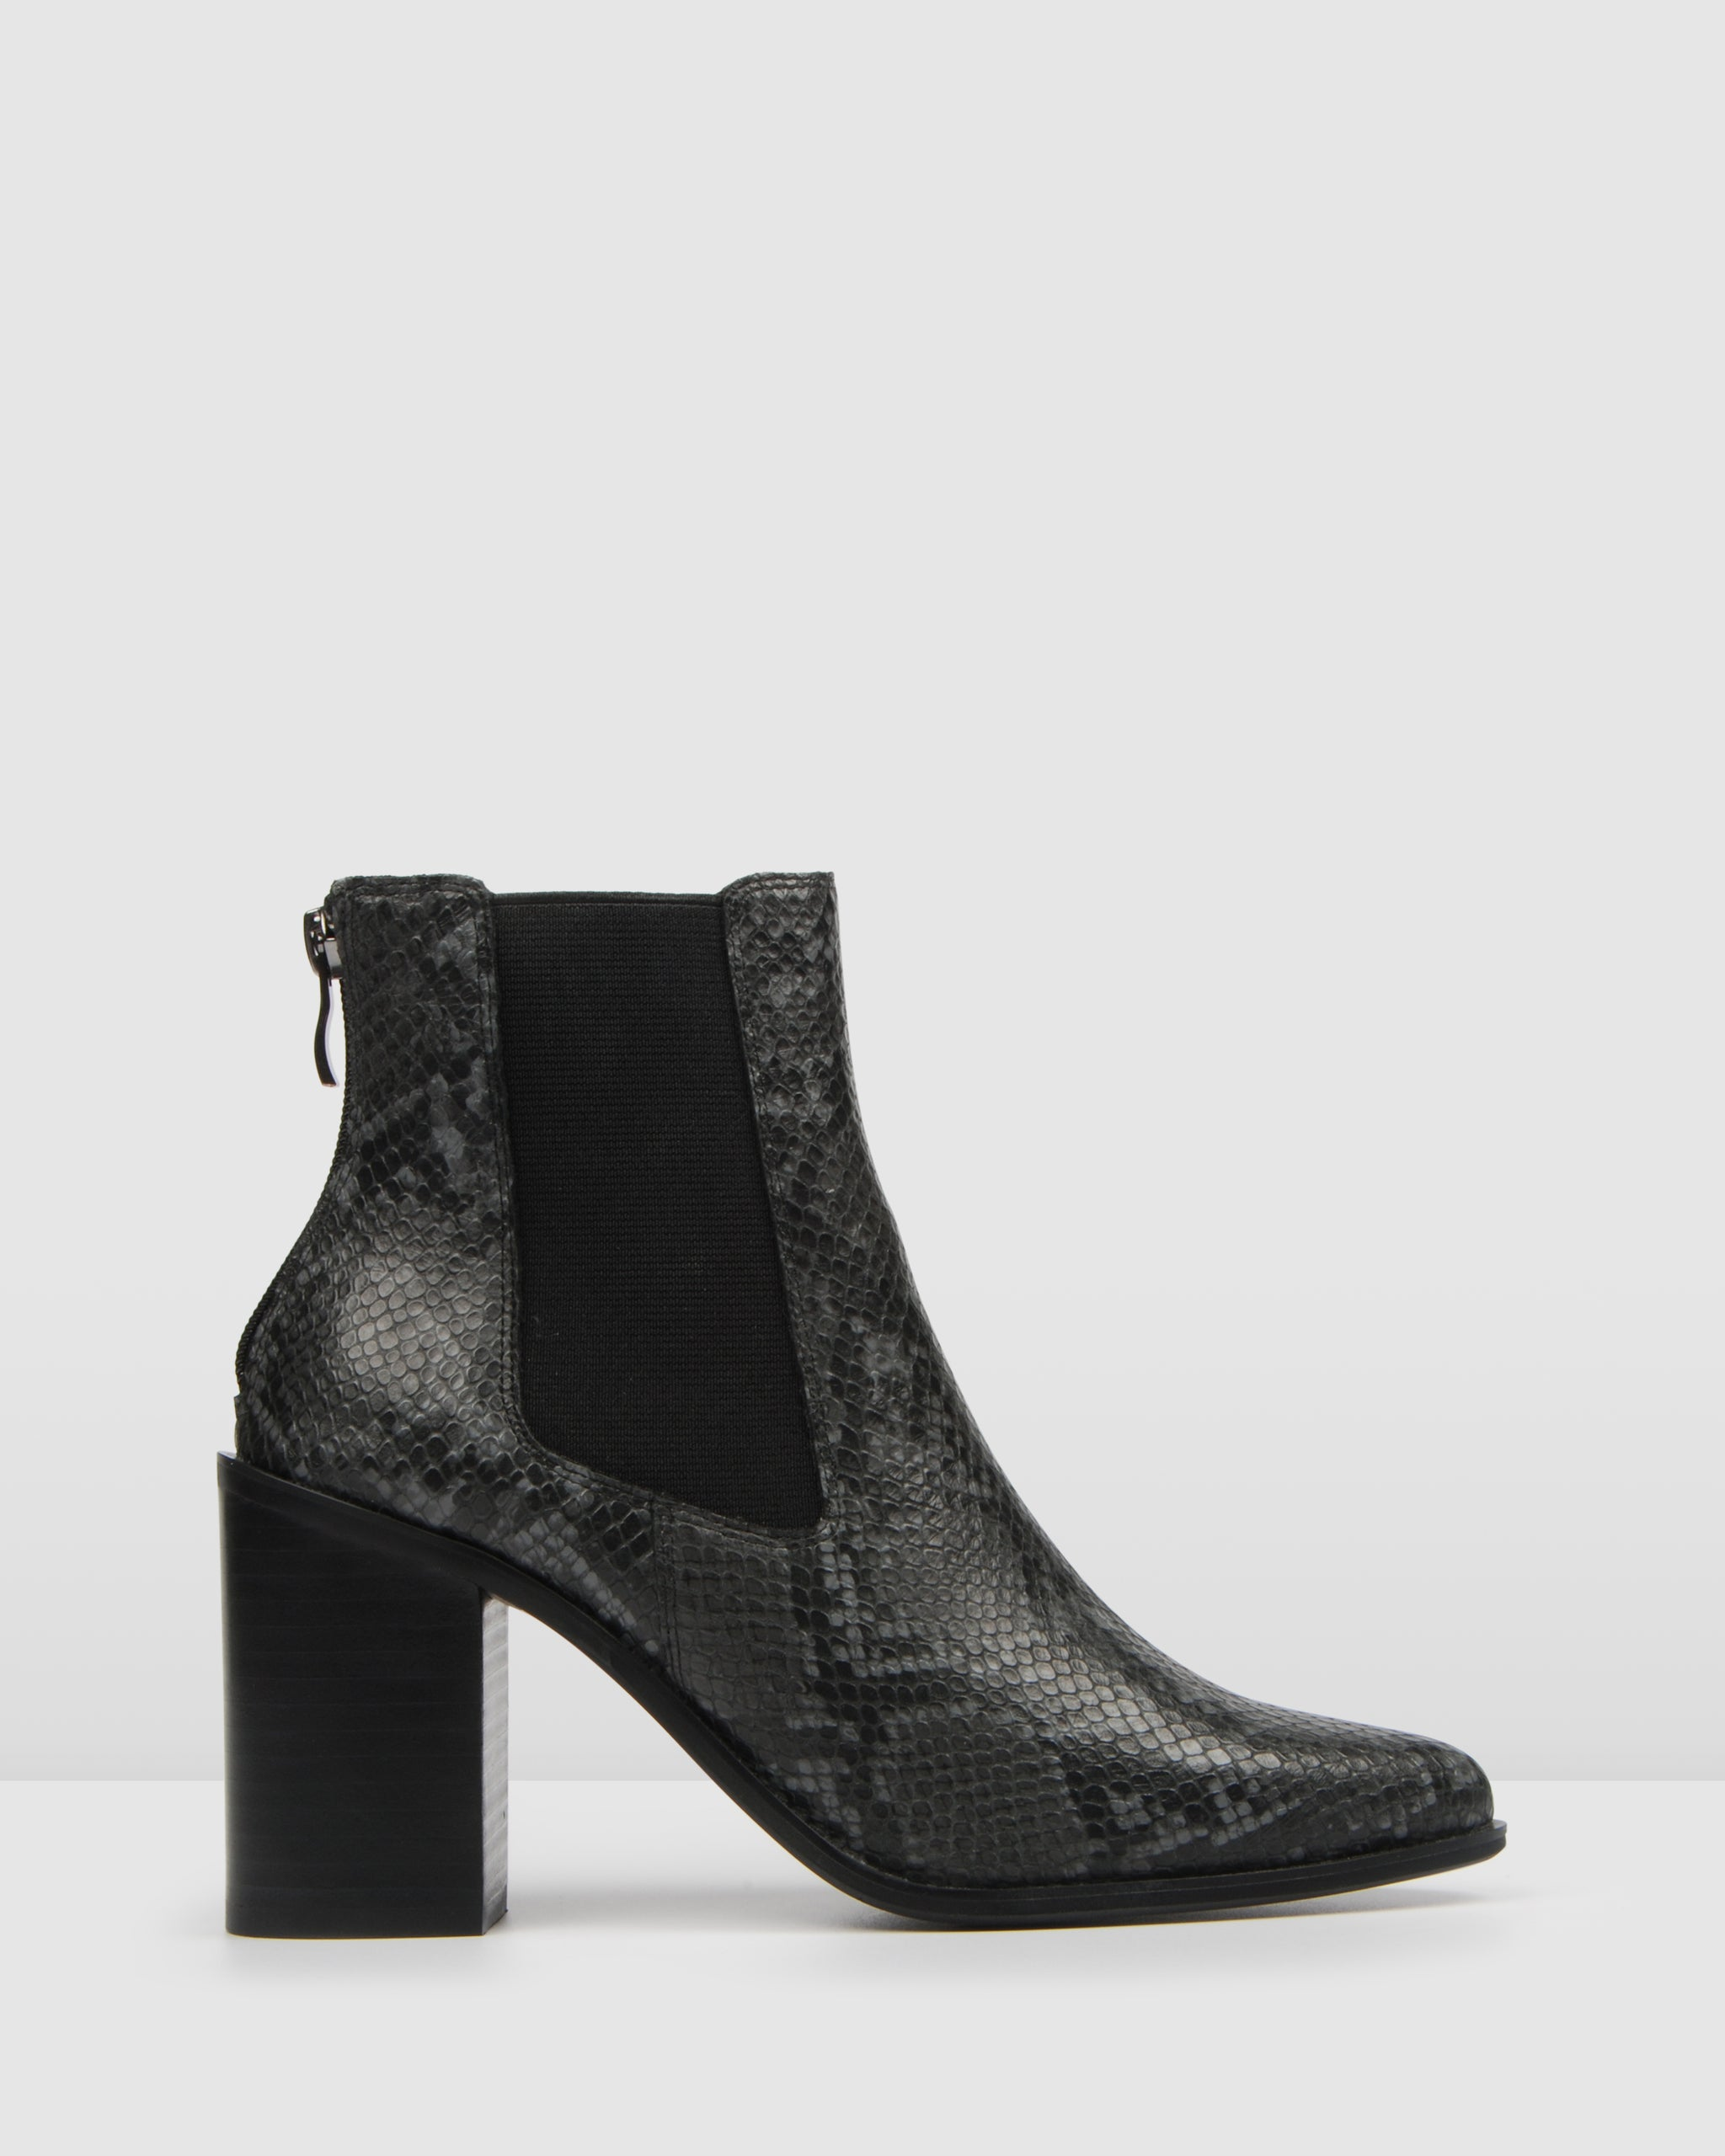 c65a387ff9 Lover High Ankle Boots Snake. $259.95. Add ...